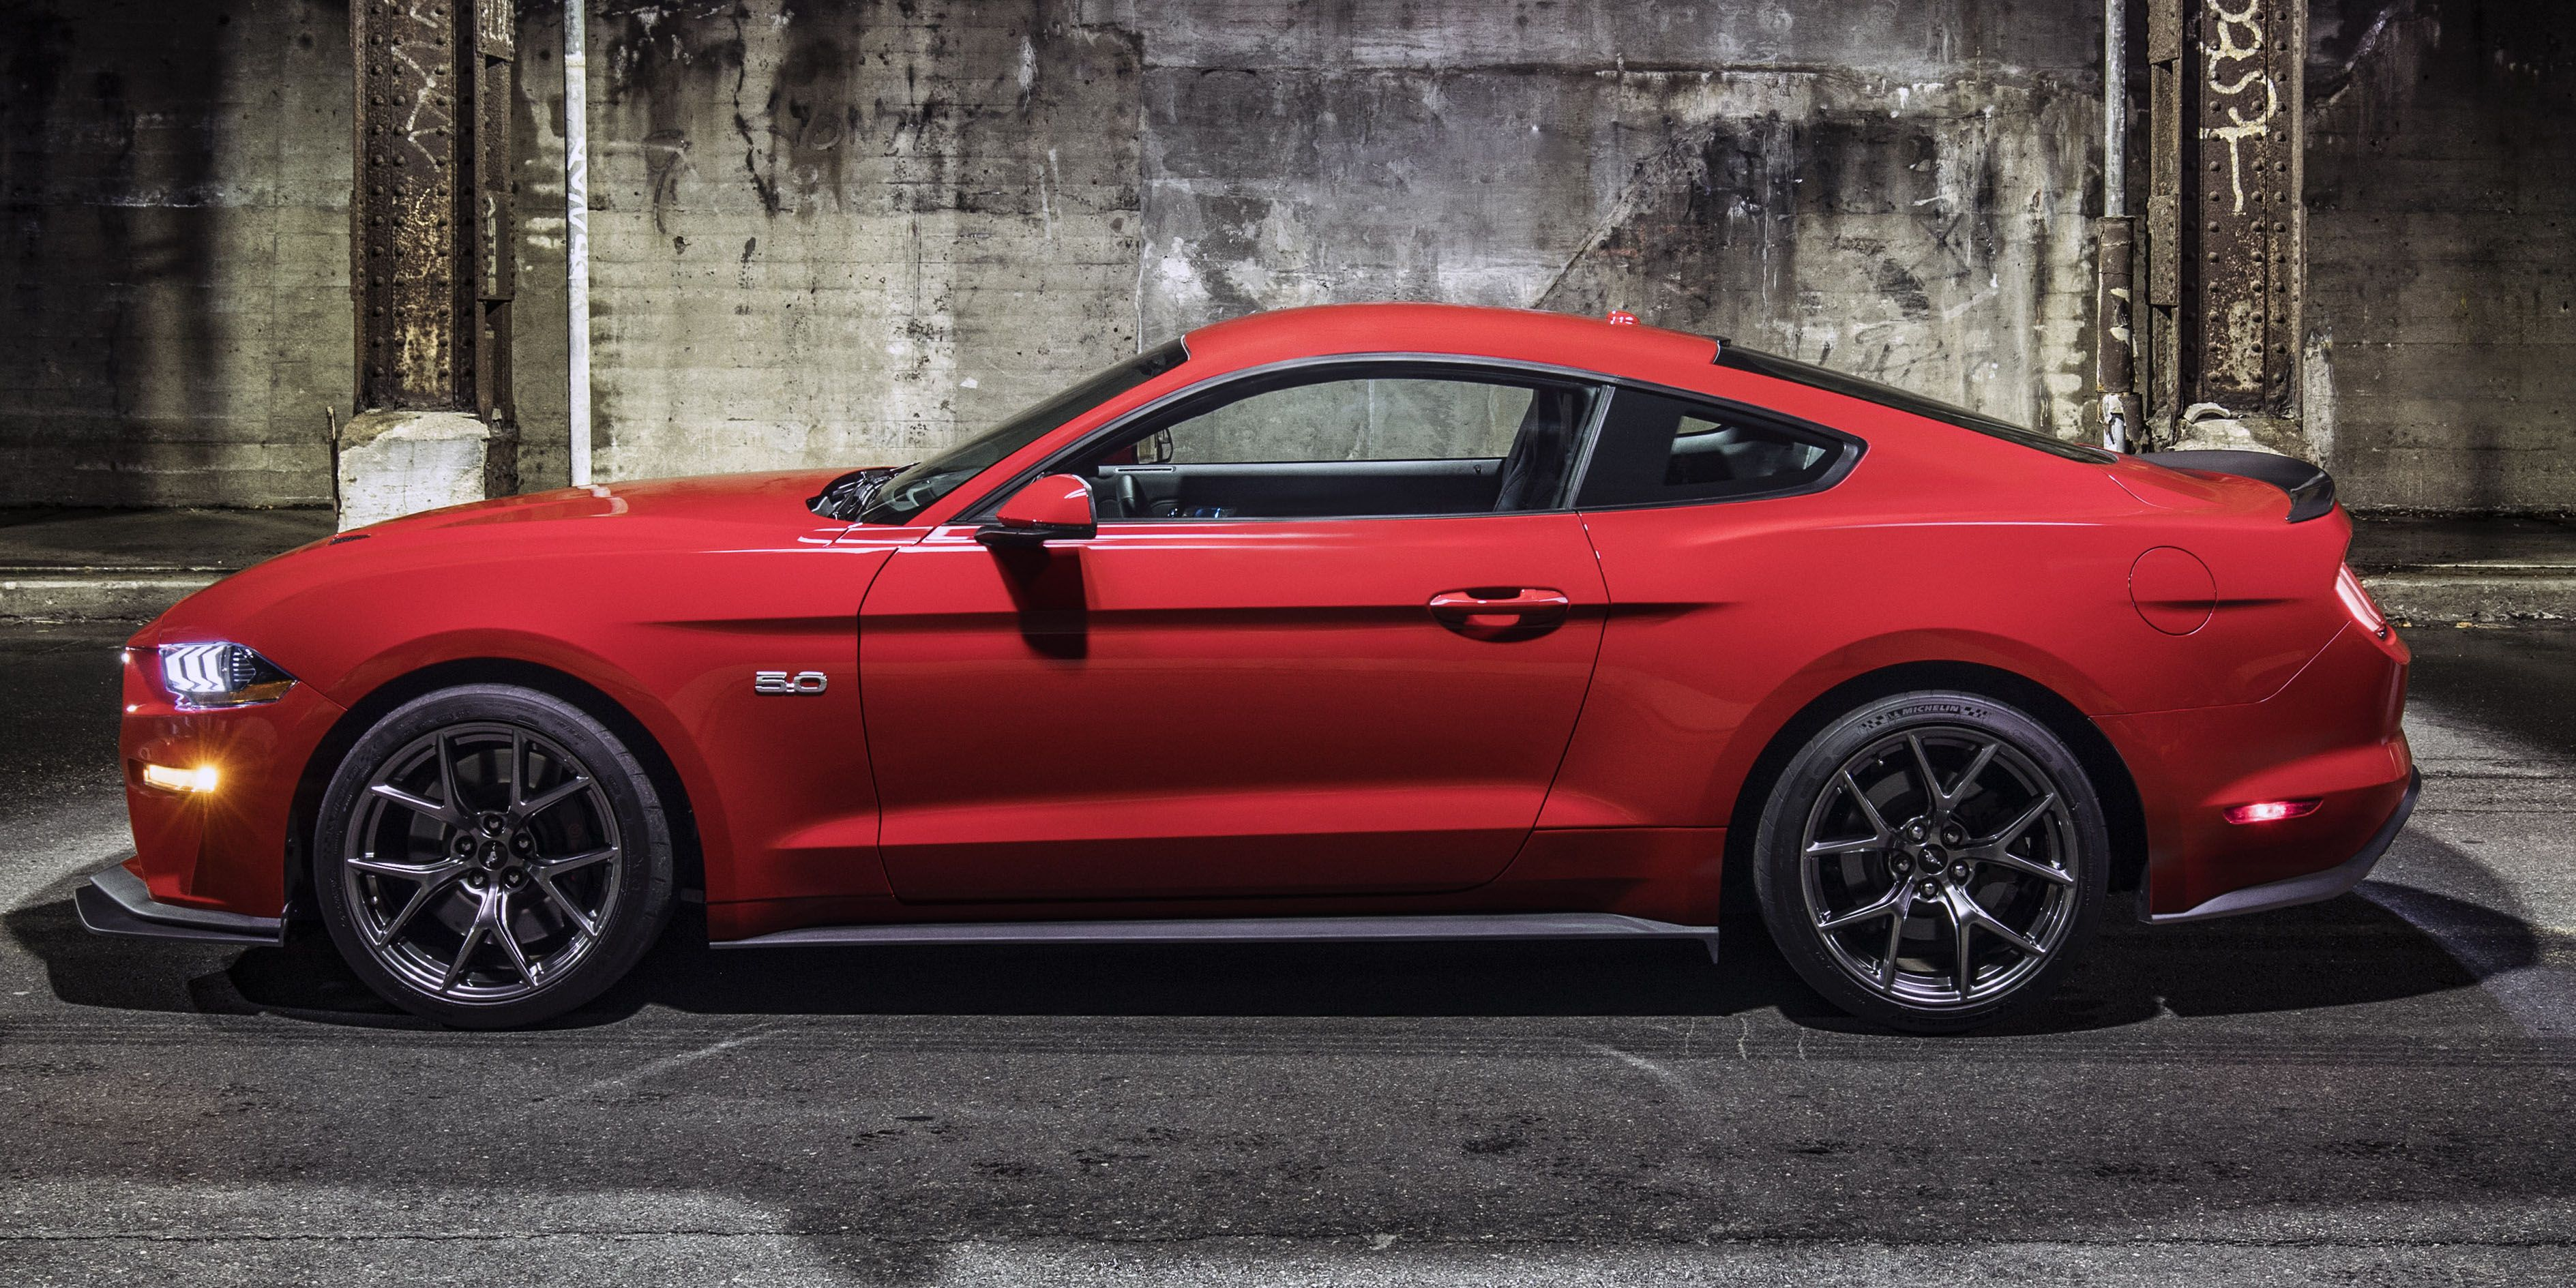 The 2018 ford mustang gts newest performance pack is for people who arent ready for a gt350